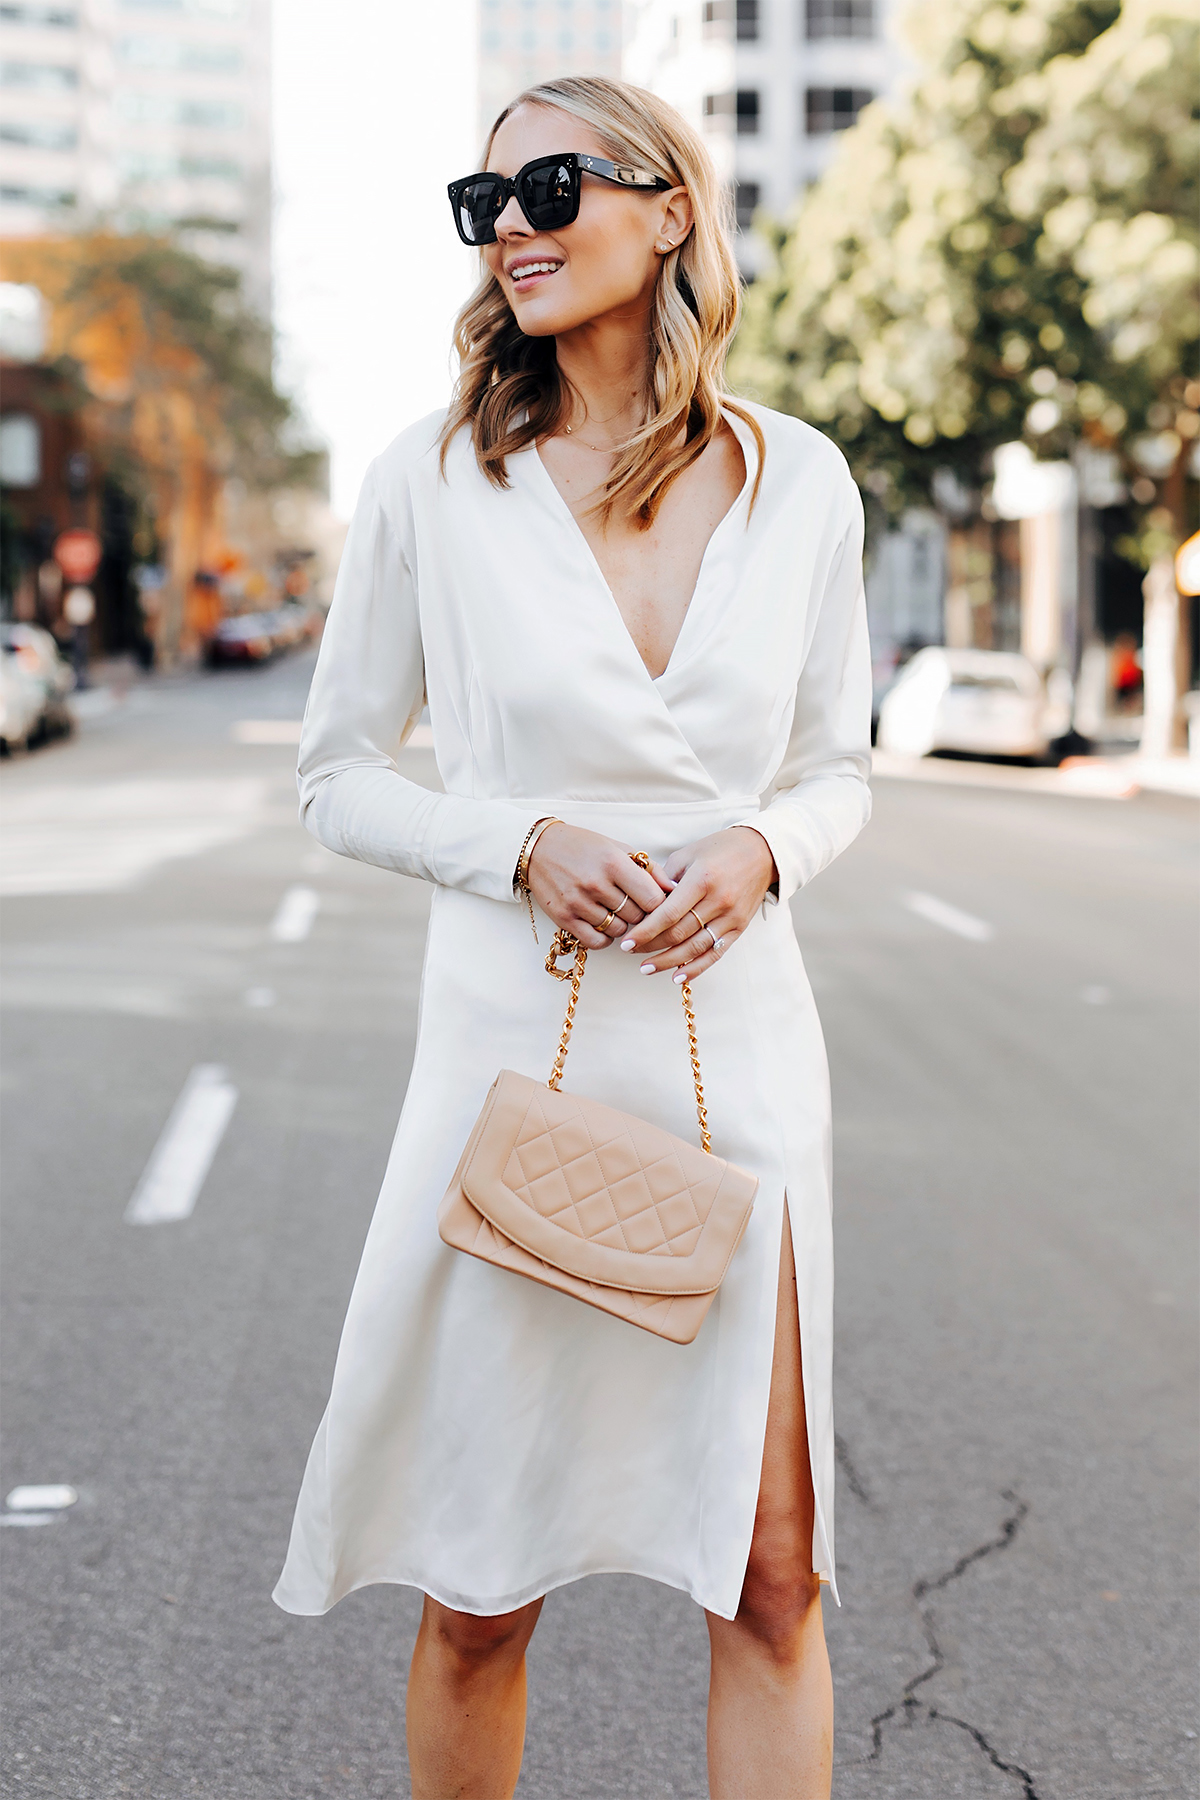 Blonde Woman Wearing Tommy Hilfiger White Wrap Dress Chanel Beige Diana Handbag Fashion Jackson San Diego Fashion Blogger Street Style